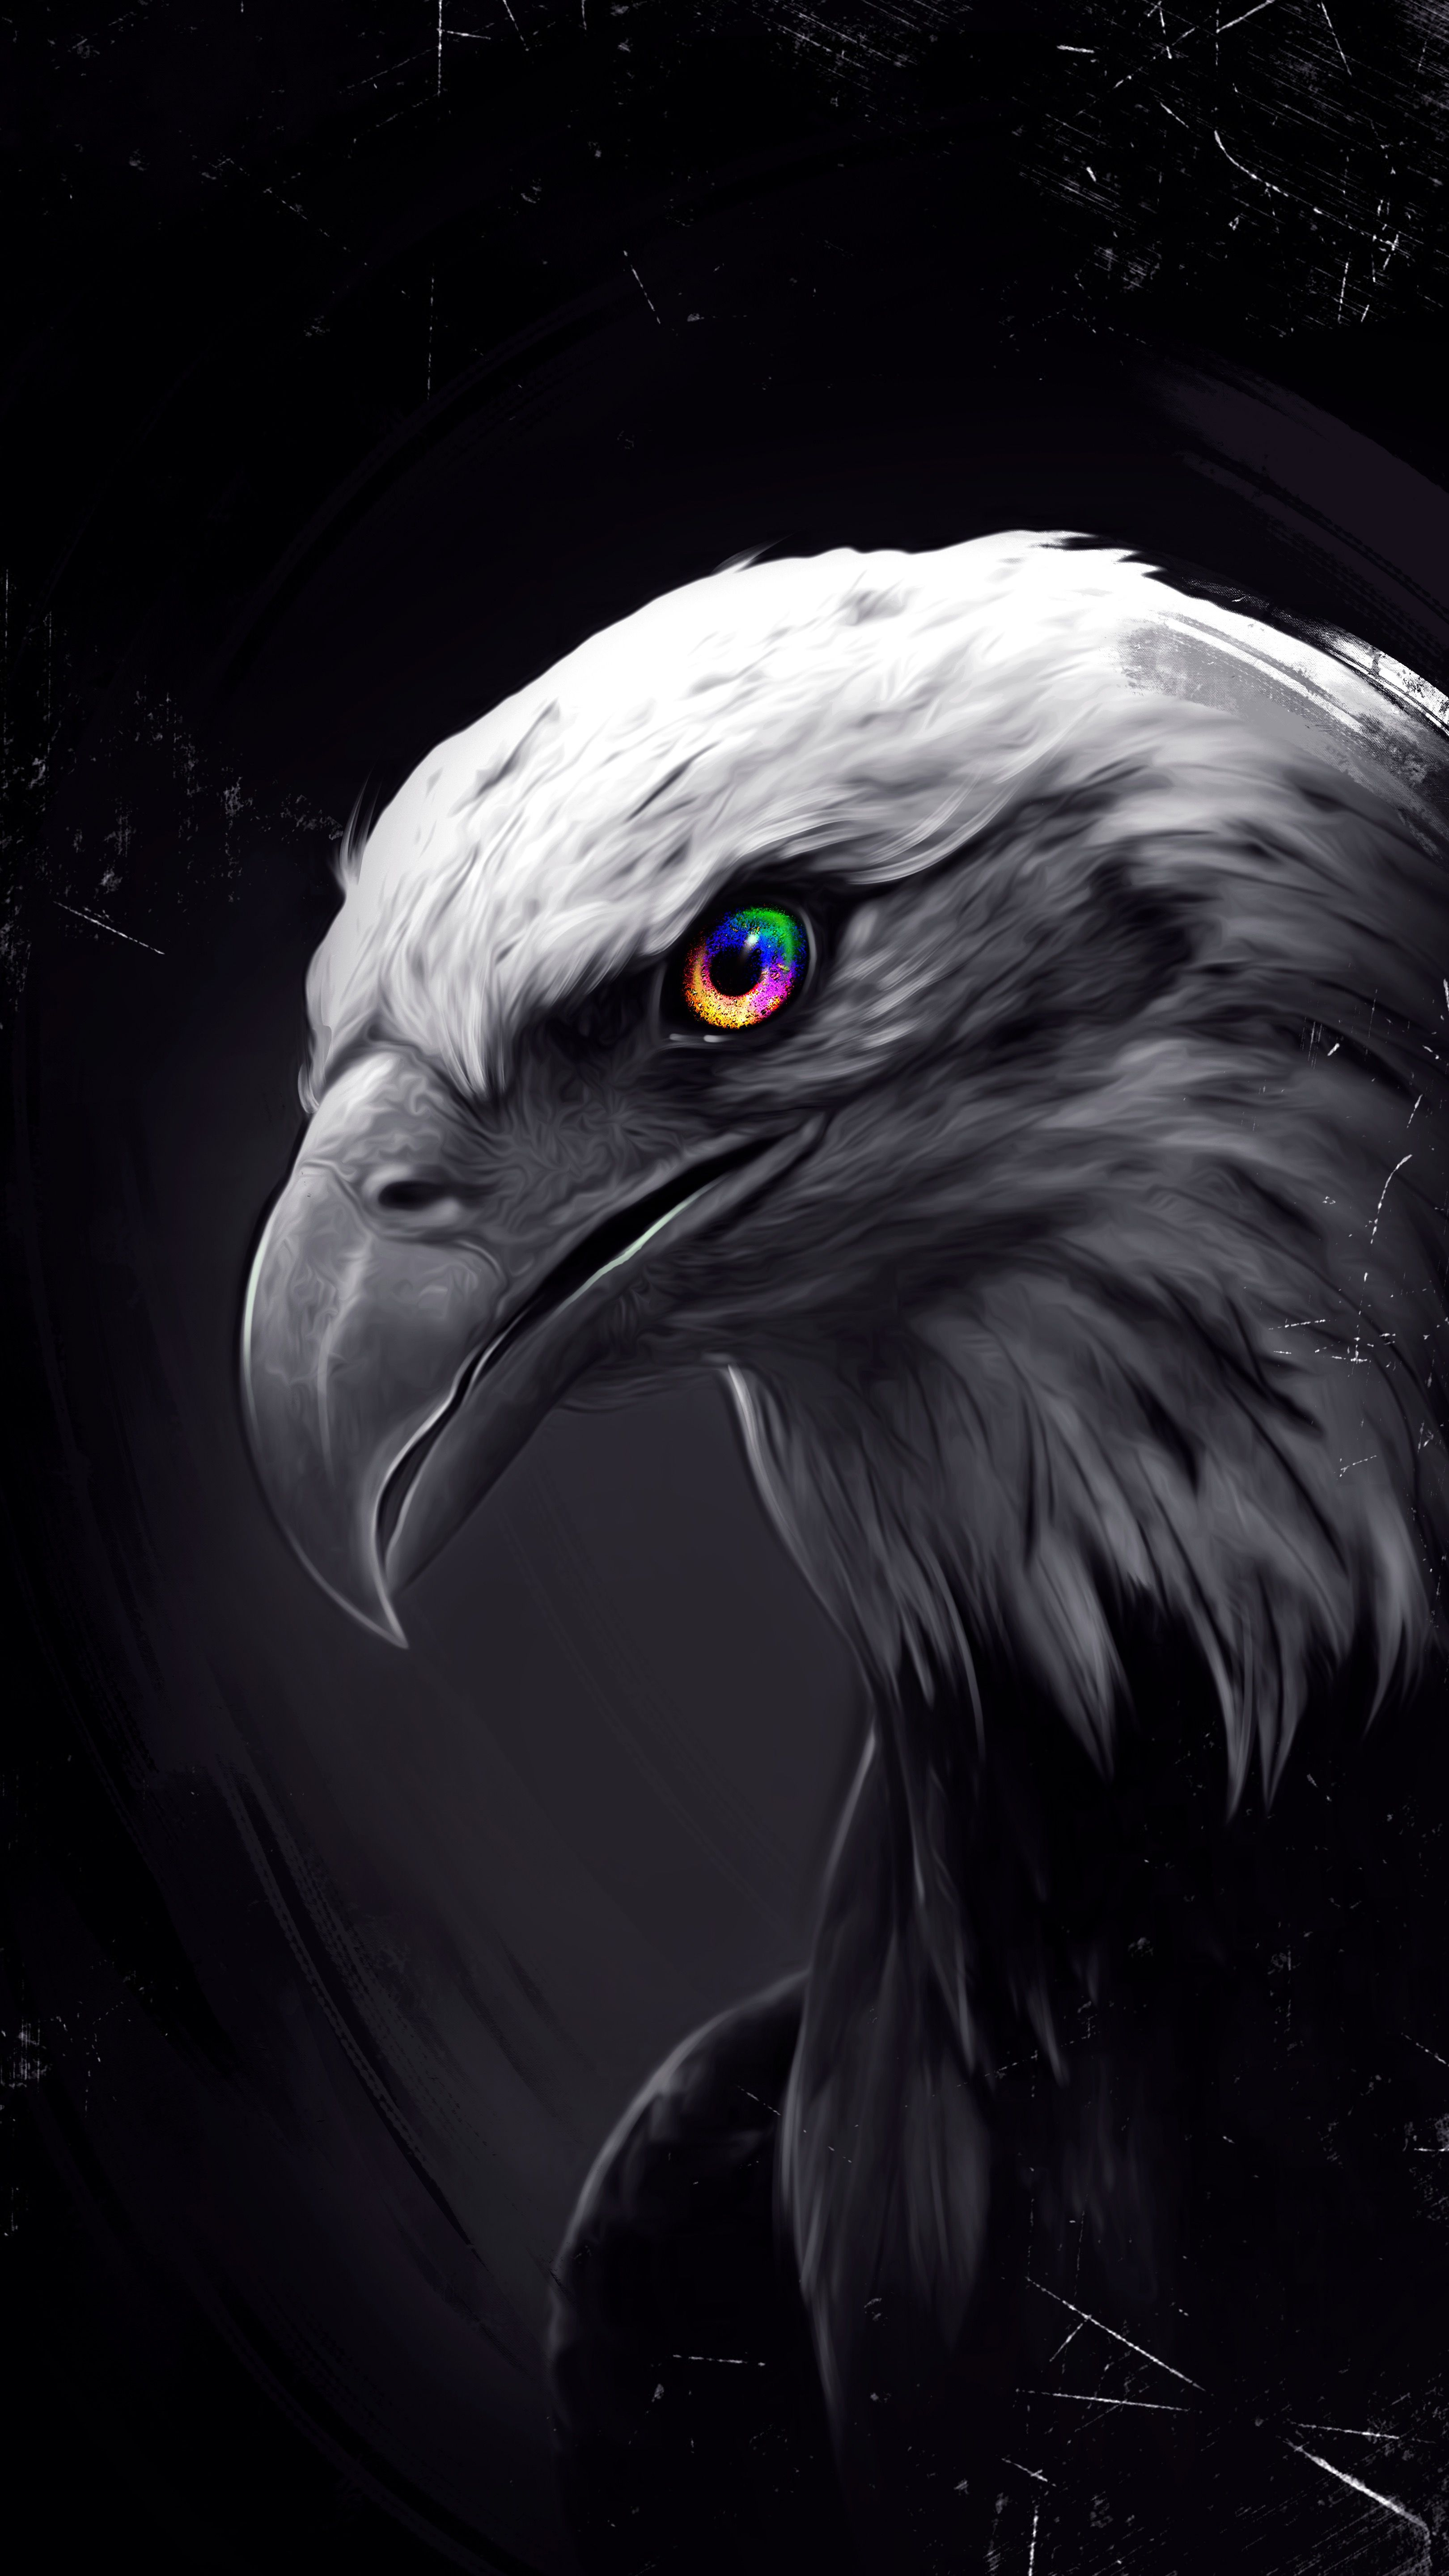 Pin By Ahmet S Aslanhan On Iphone 12 Pro Max Wallpaper Eagle Wallpaper Eagle Pictures Wild Animal Wallpaper Eagle bird full hd wallpapers